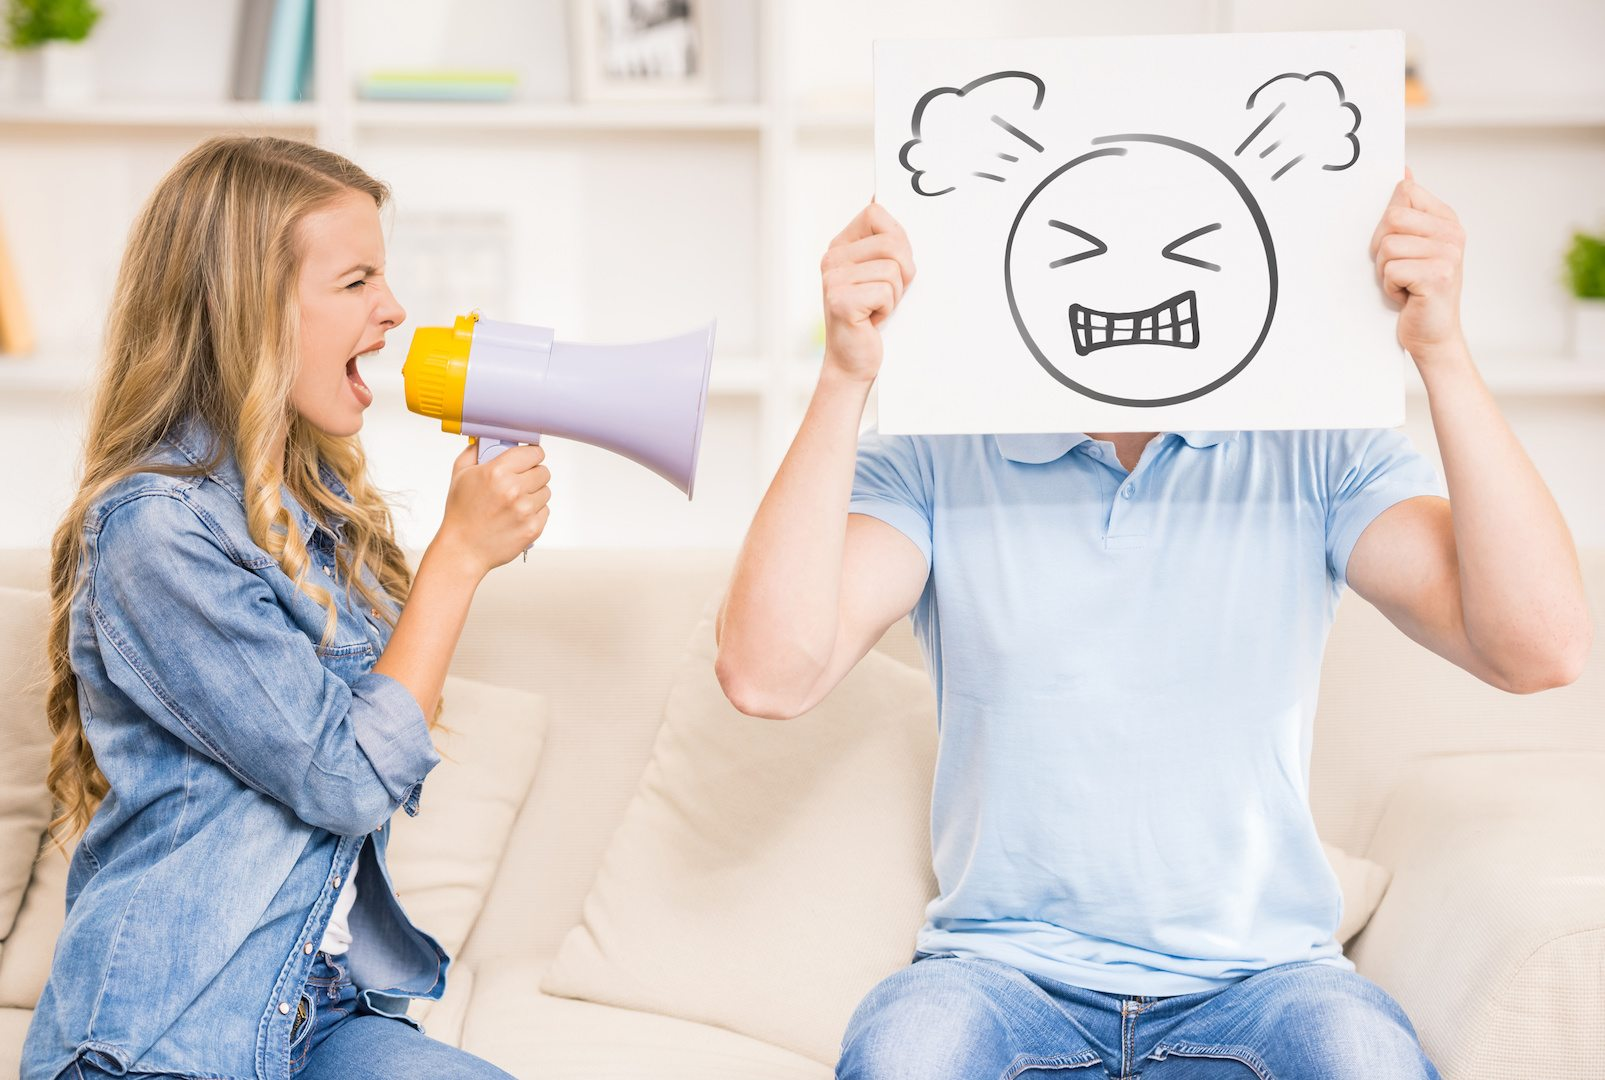 Serious Communication Games War words arguing yelling fighting anger AdobeStock_88959970 copy